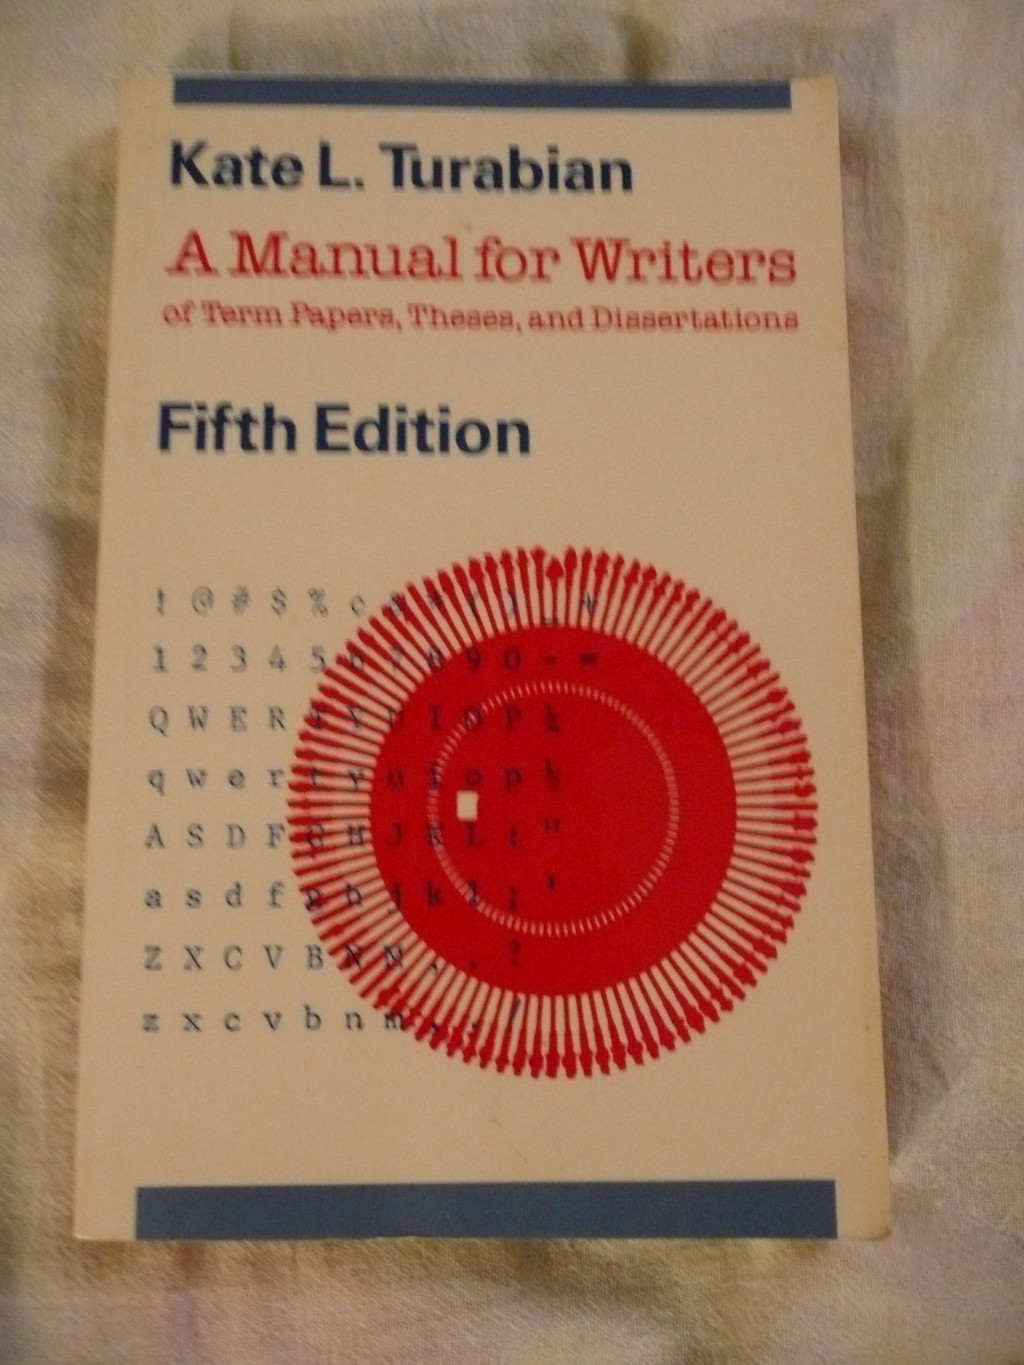 014 Research Paper Manual For Writers Of Papers Theses And Dissertations Magnificent A Amazon 9th Edition Pdf 8th 13 Large